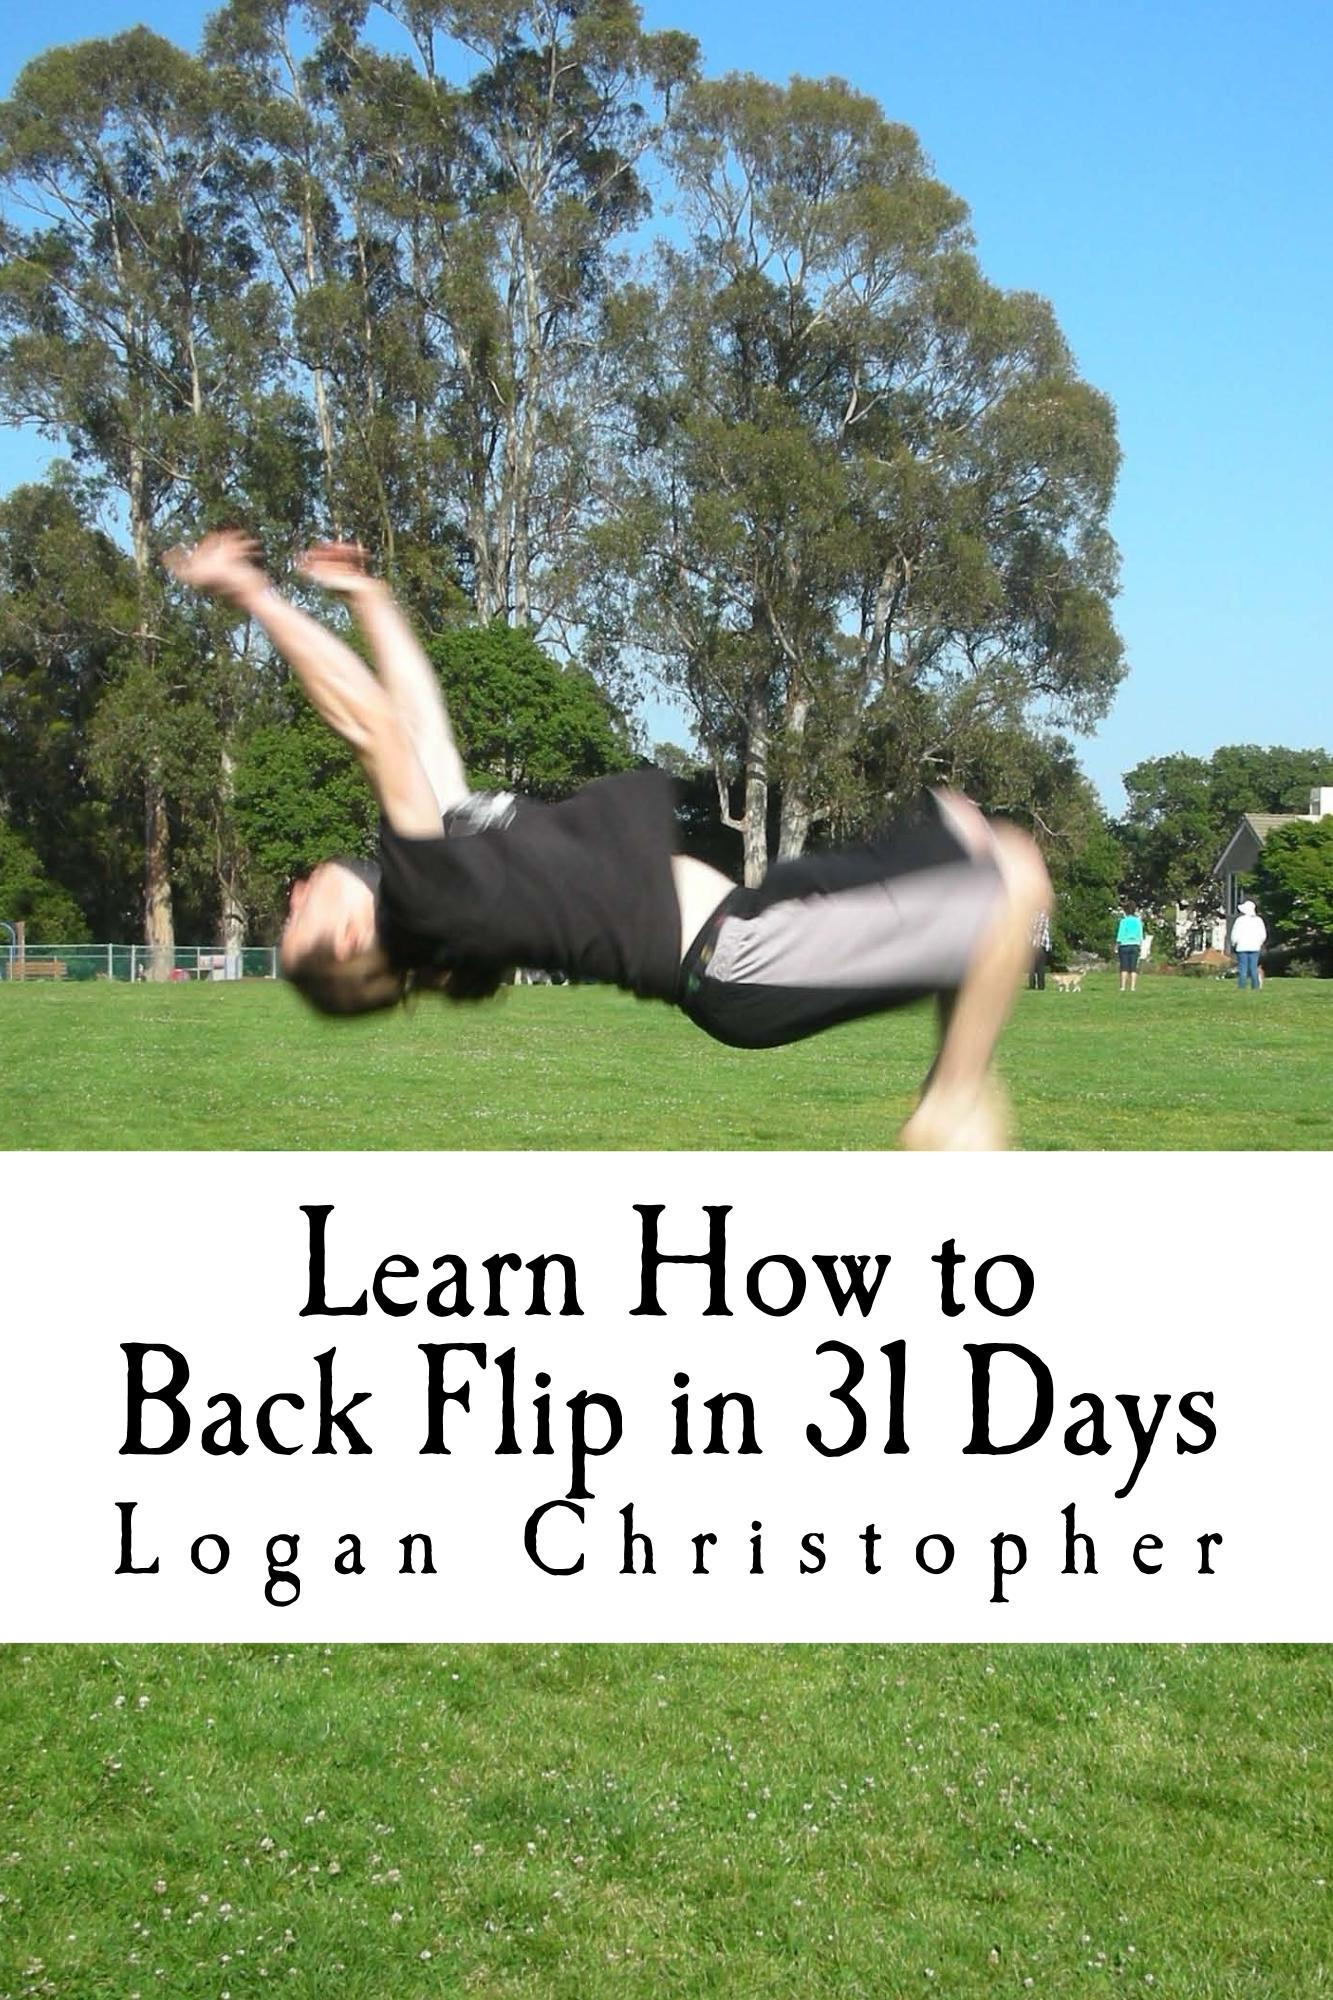 Learn How to Back Flip in 31 Days